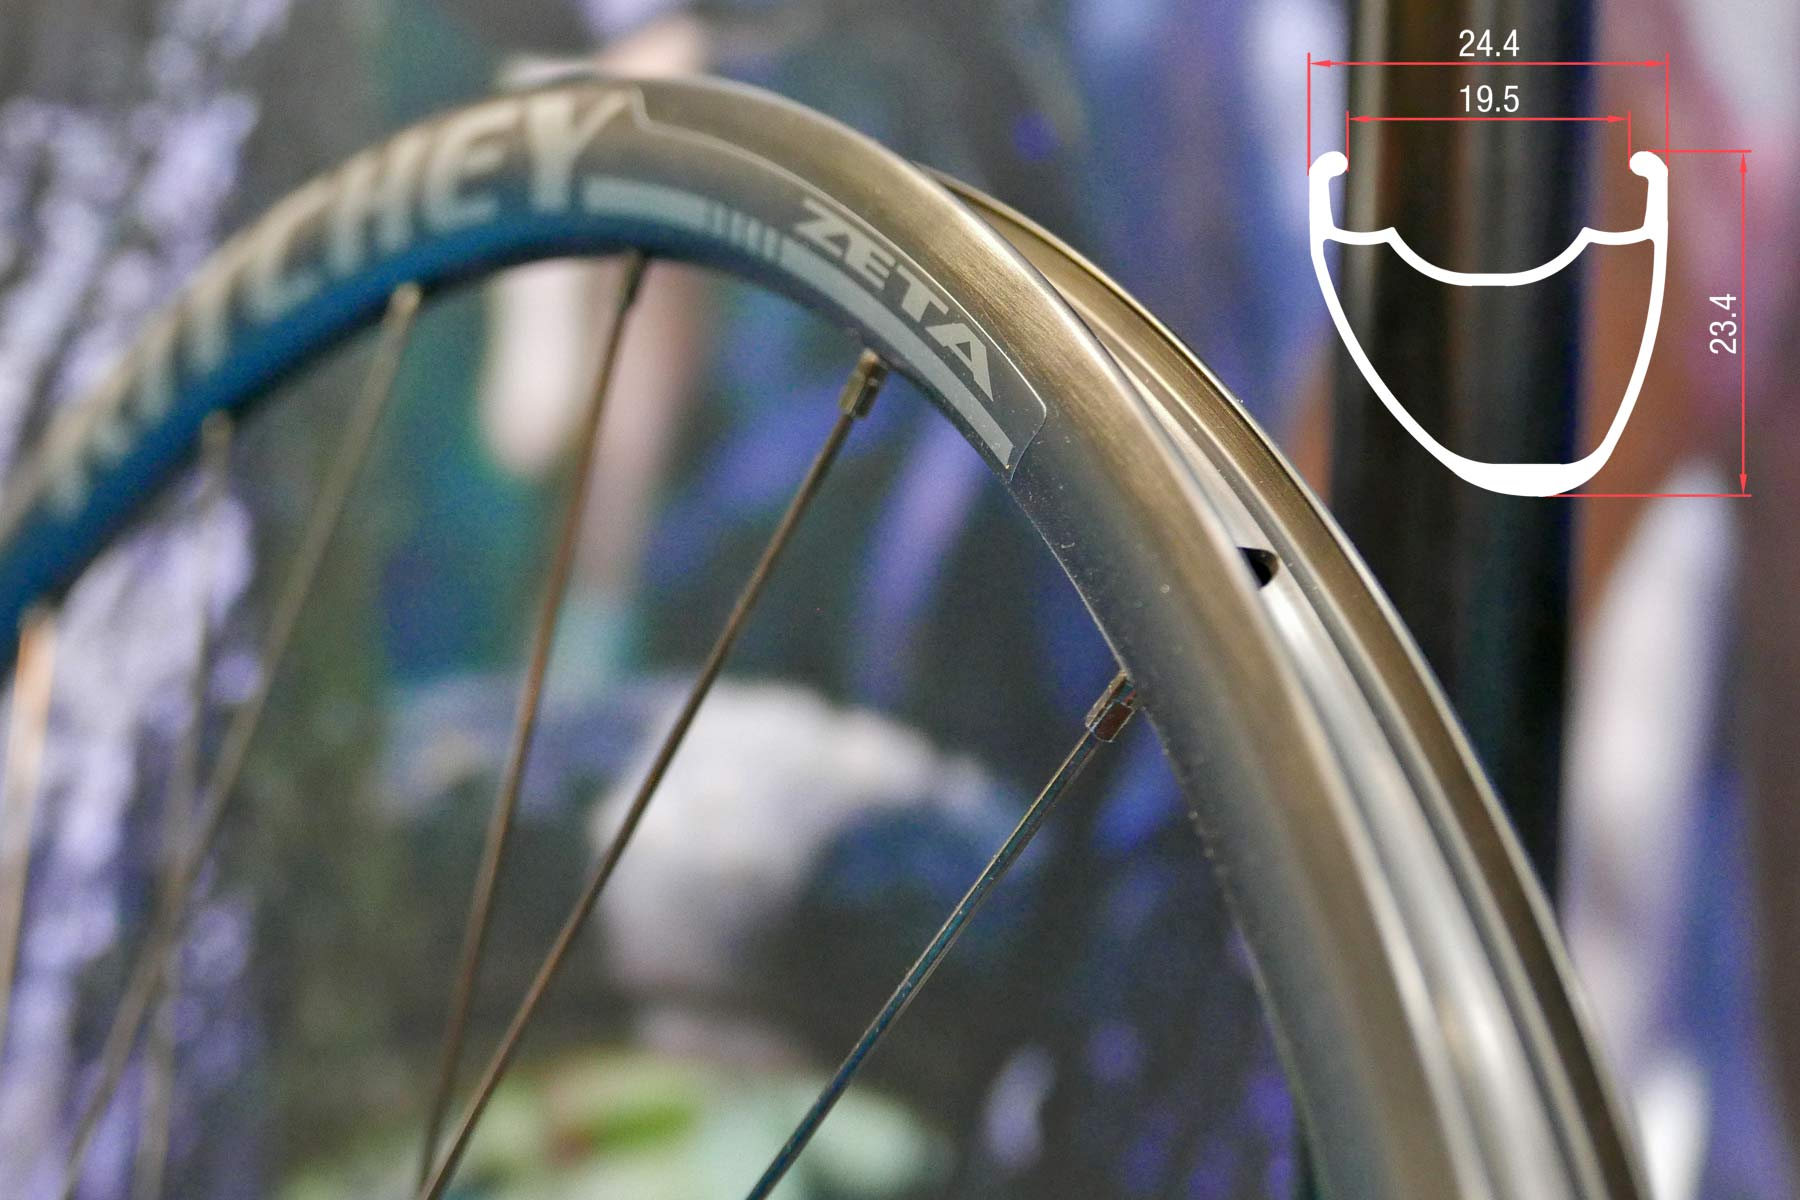 Ritchey Comp Zeta budget tubeless-ready aluminum disc brake wheels